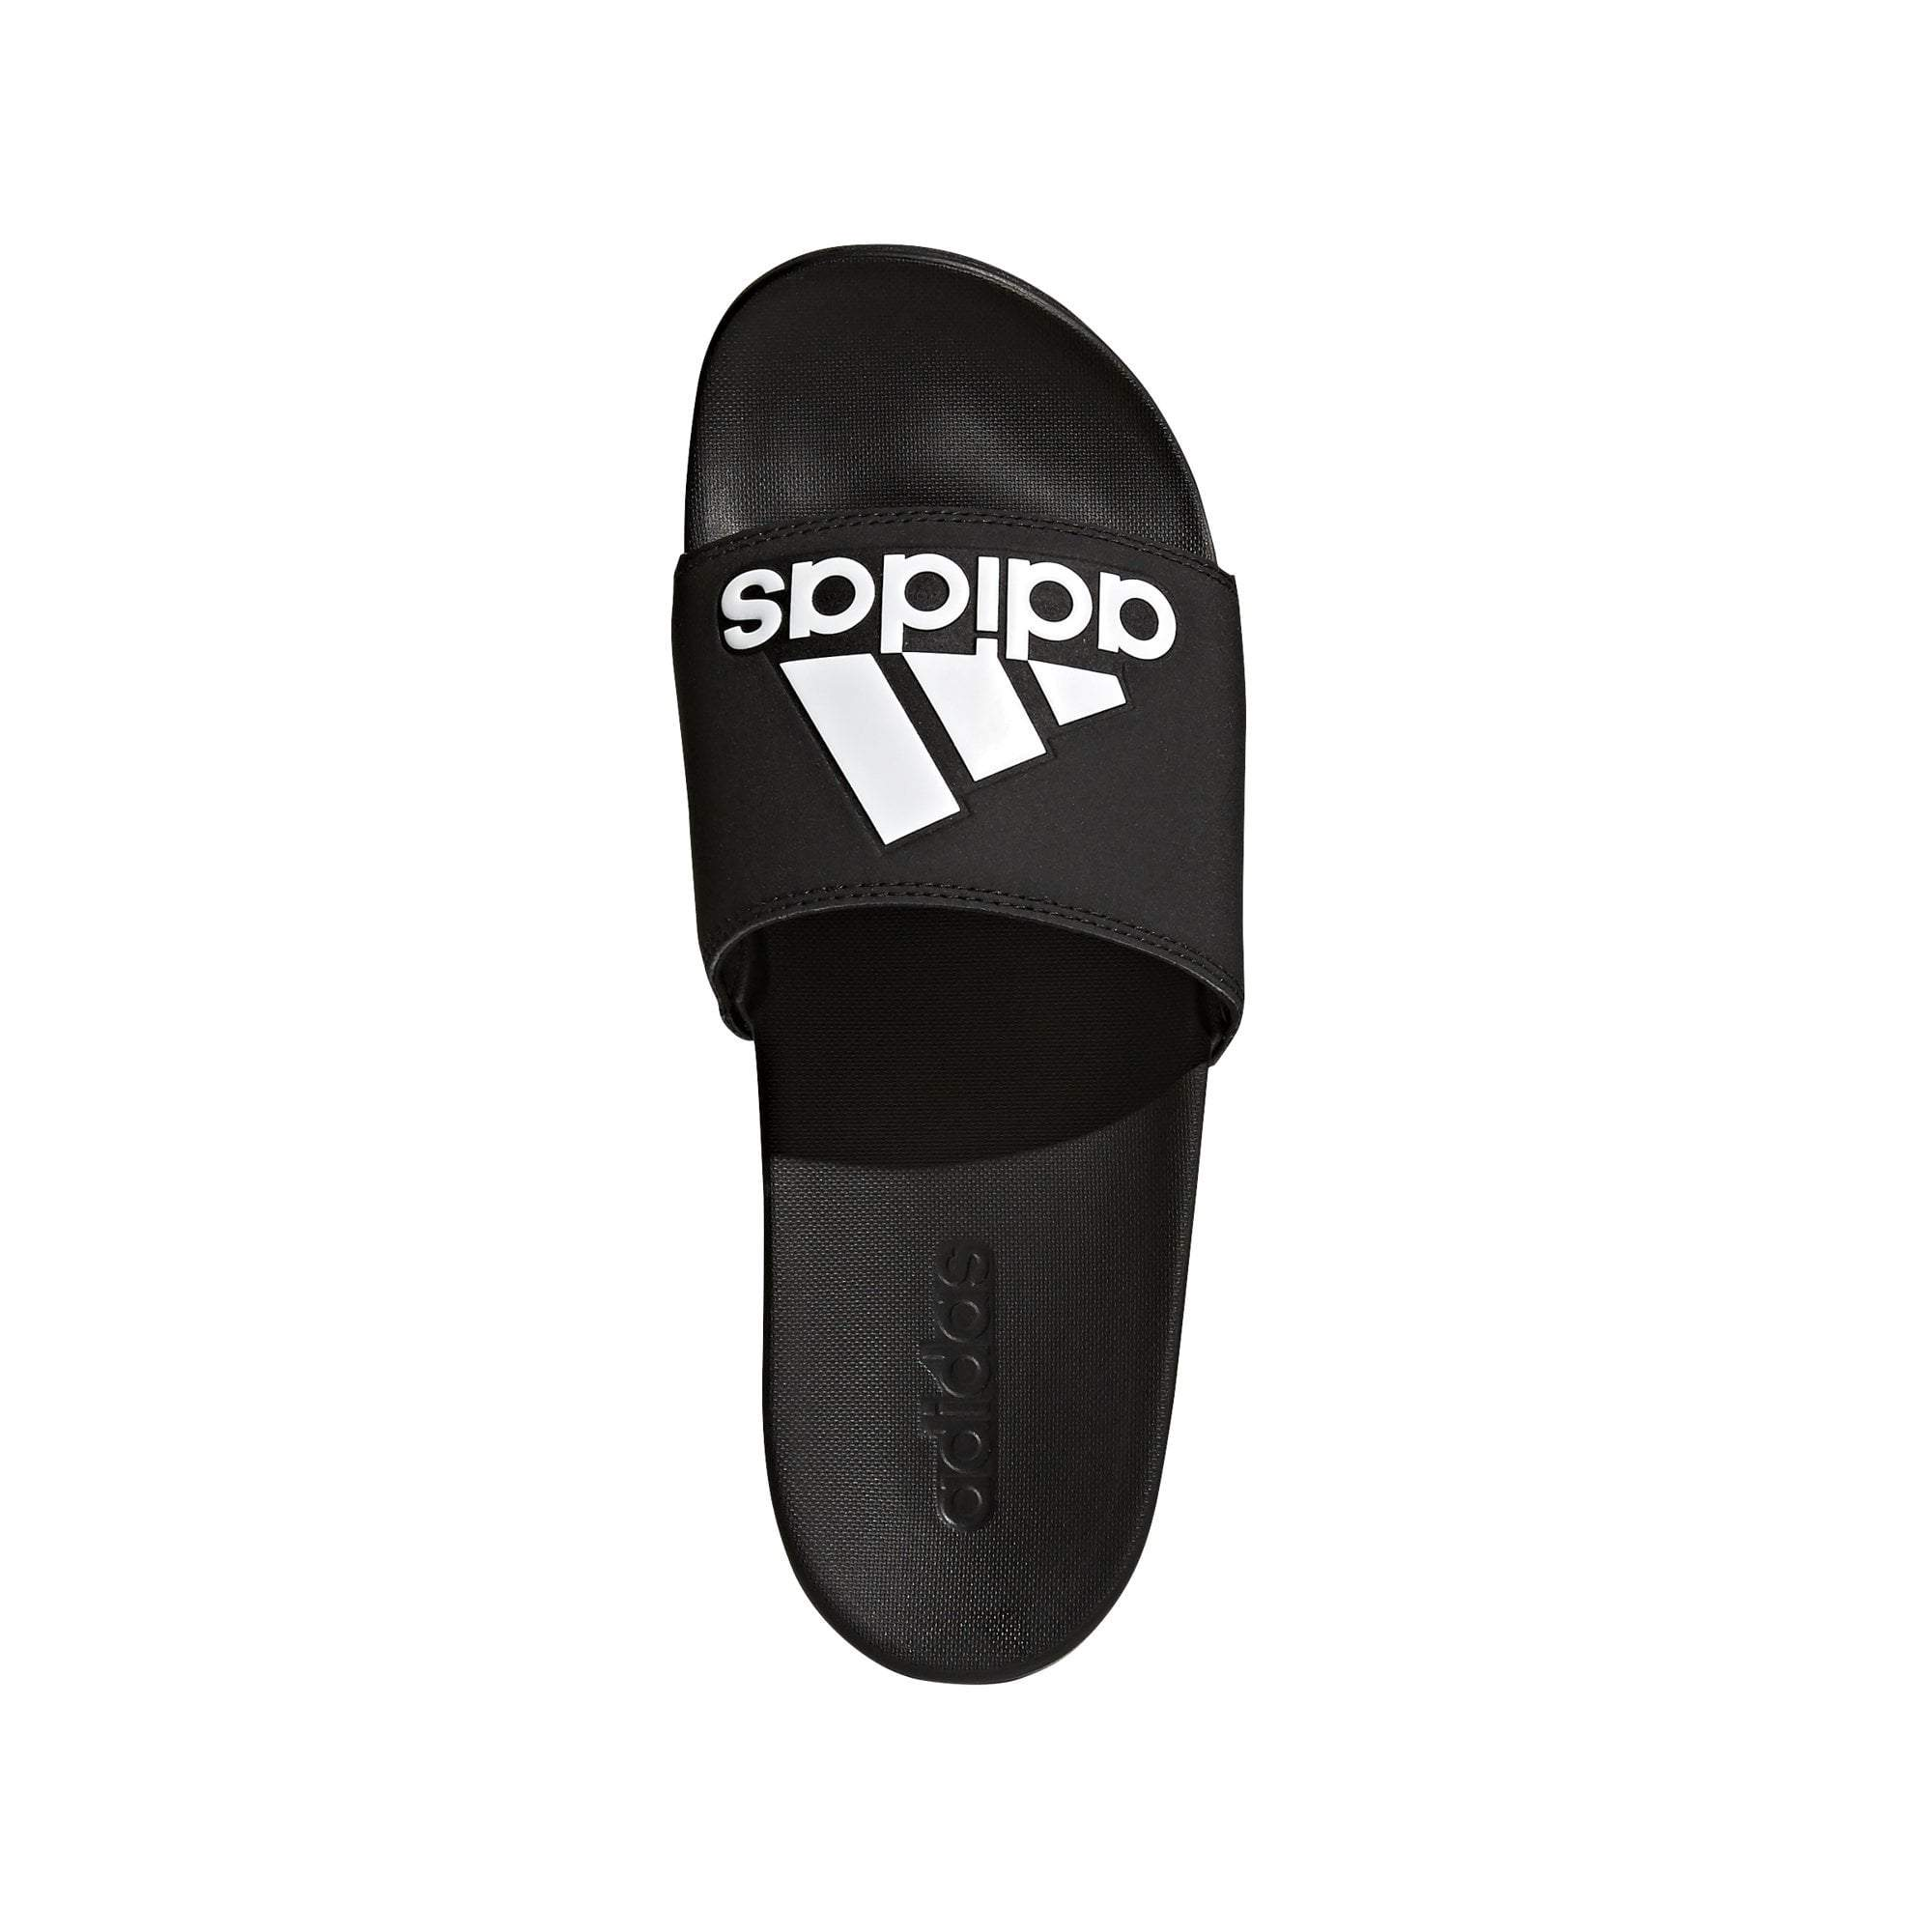 b432db9ea8a ADIDAS MEN S TRAINING ADILETTE CLOUDFOAM PLUS LOGO BLACK SLIDES - INSPORT